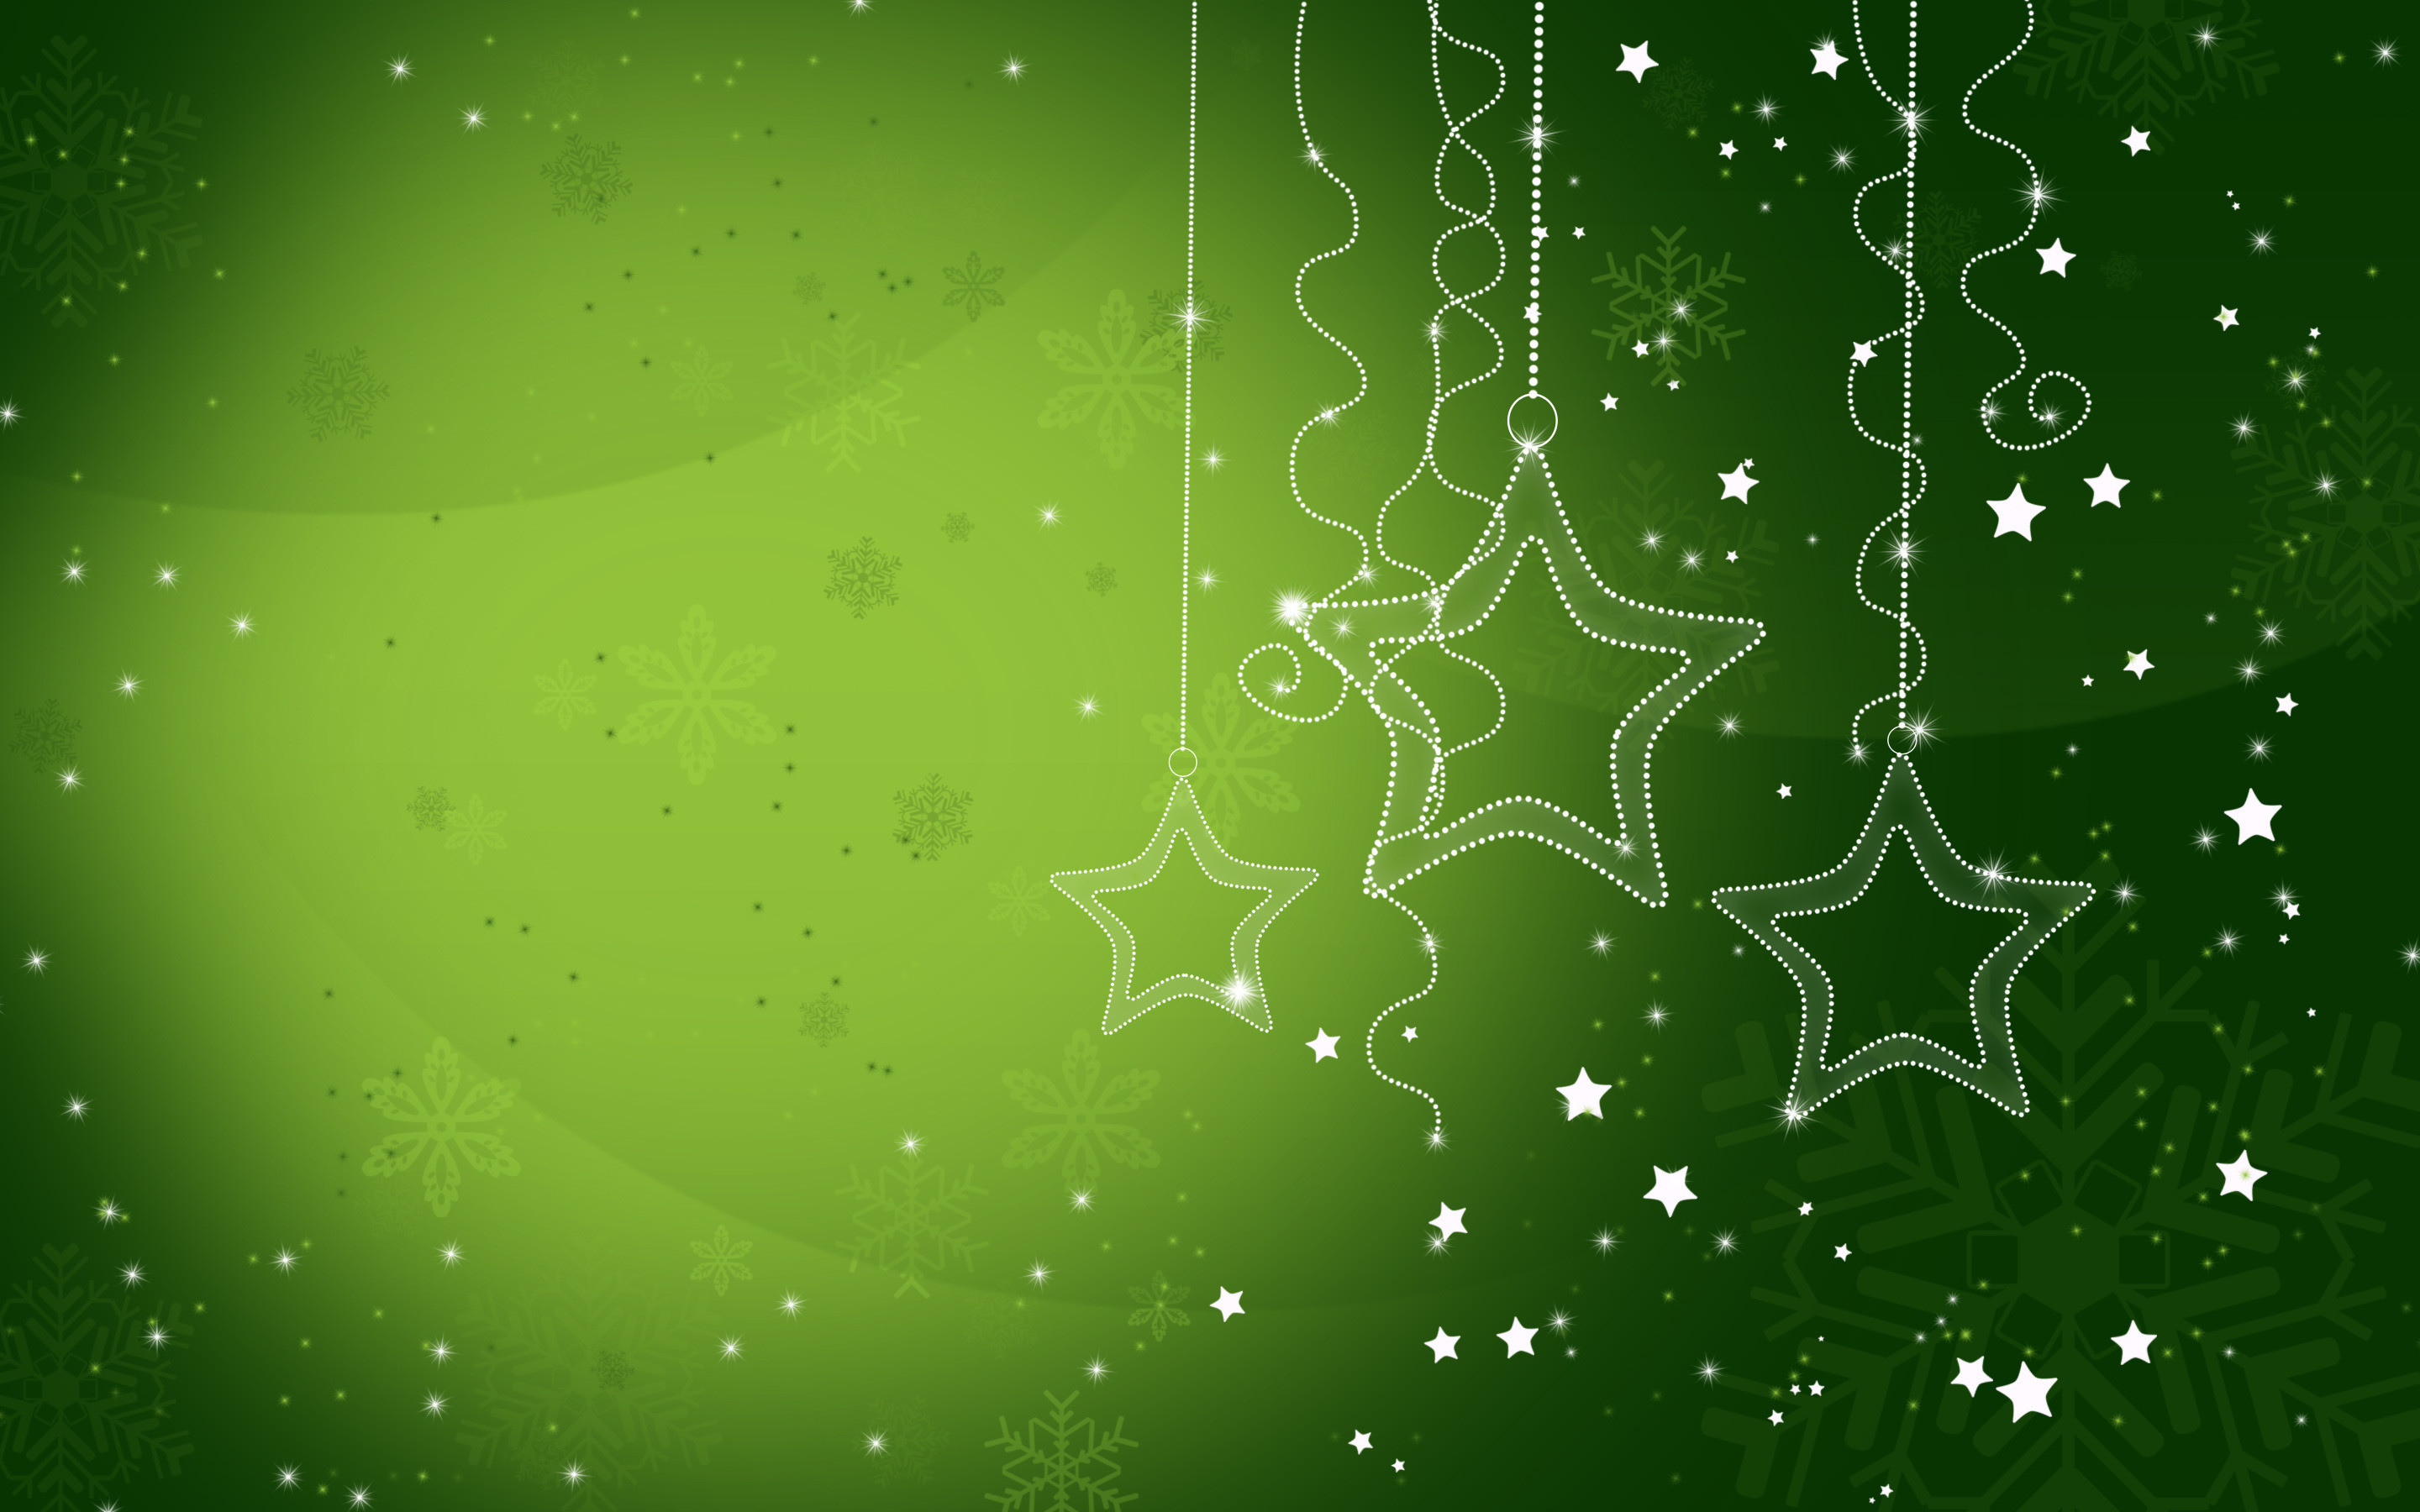 2880x1800 Green Christmas Wallpaper.